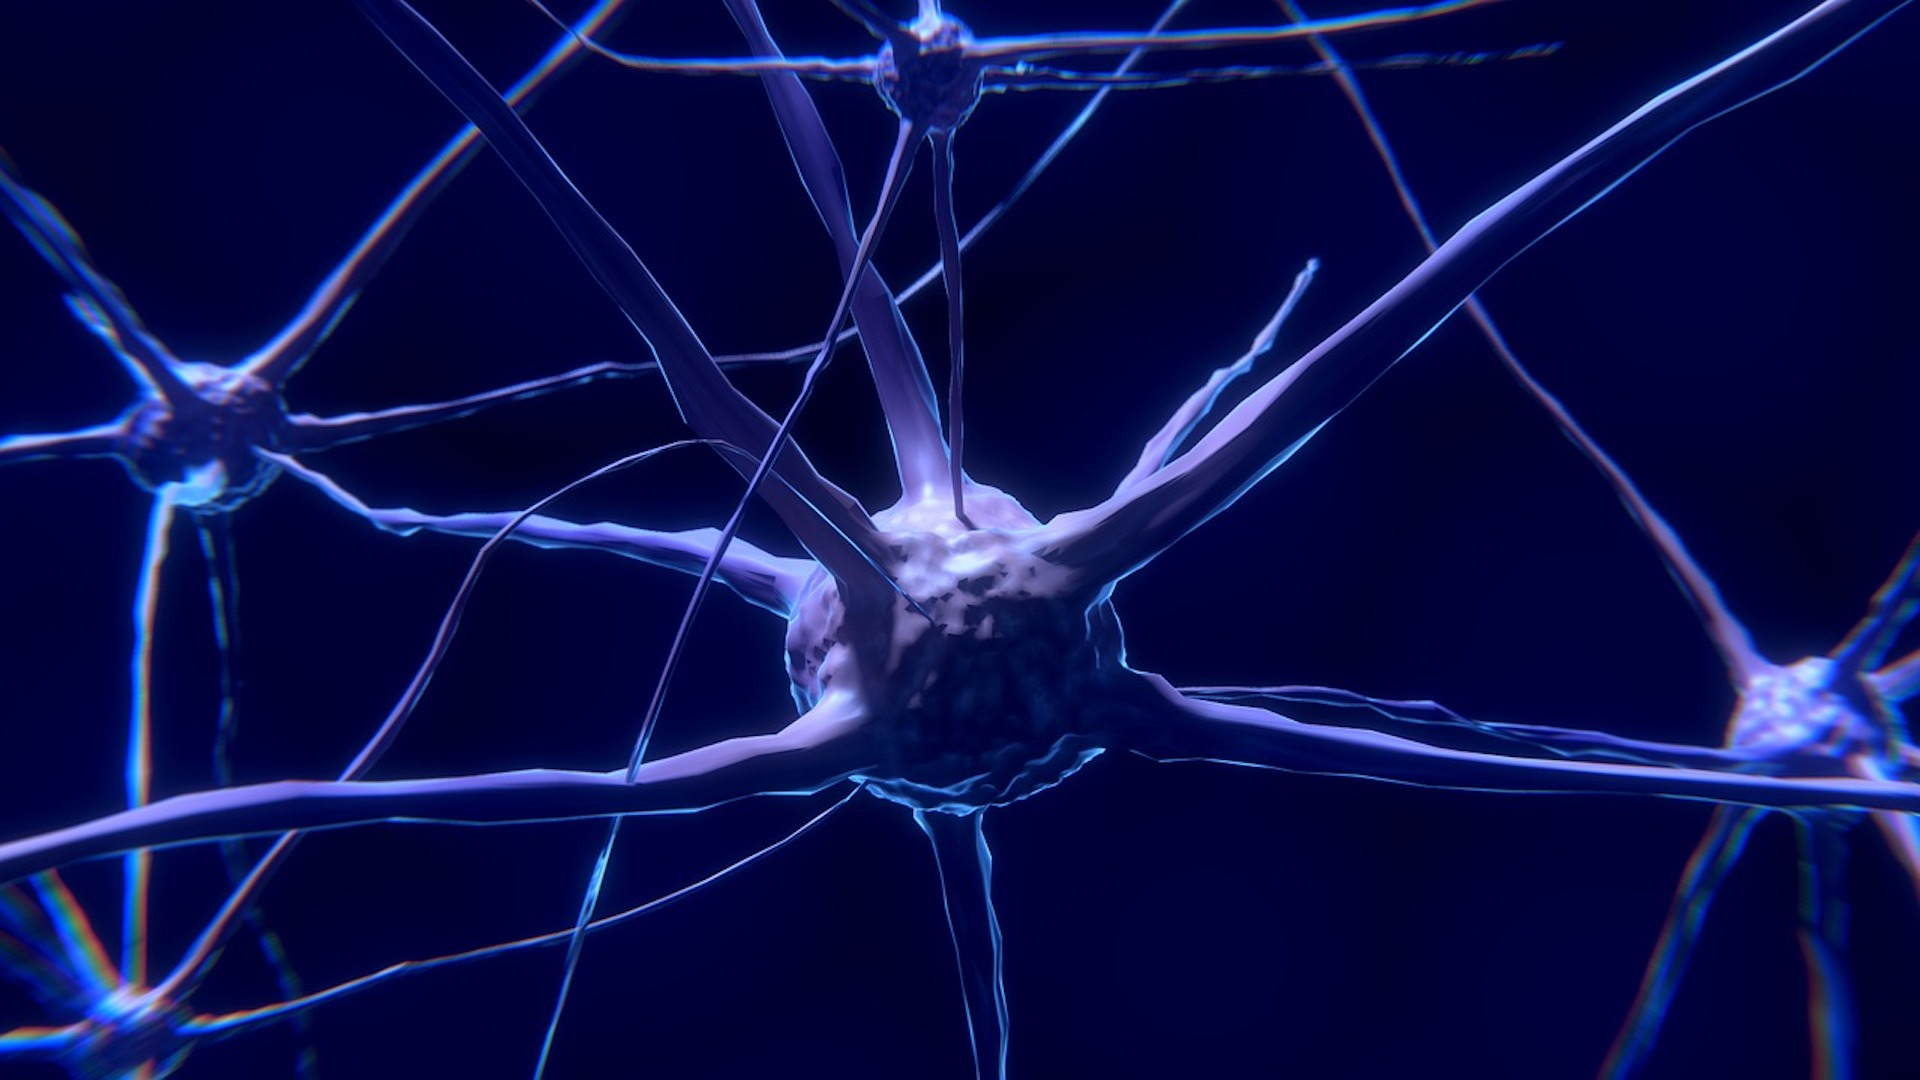 ALS, or Amyotrophic Lateral Sclerosis, causes the death of neurons in the human body.